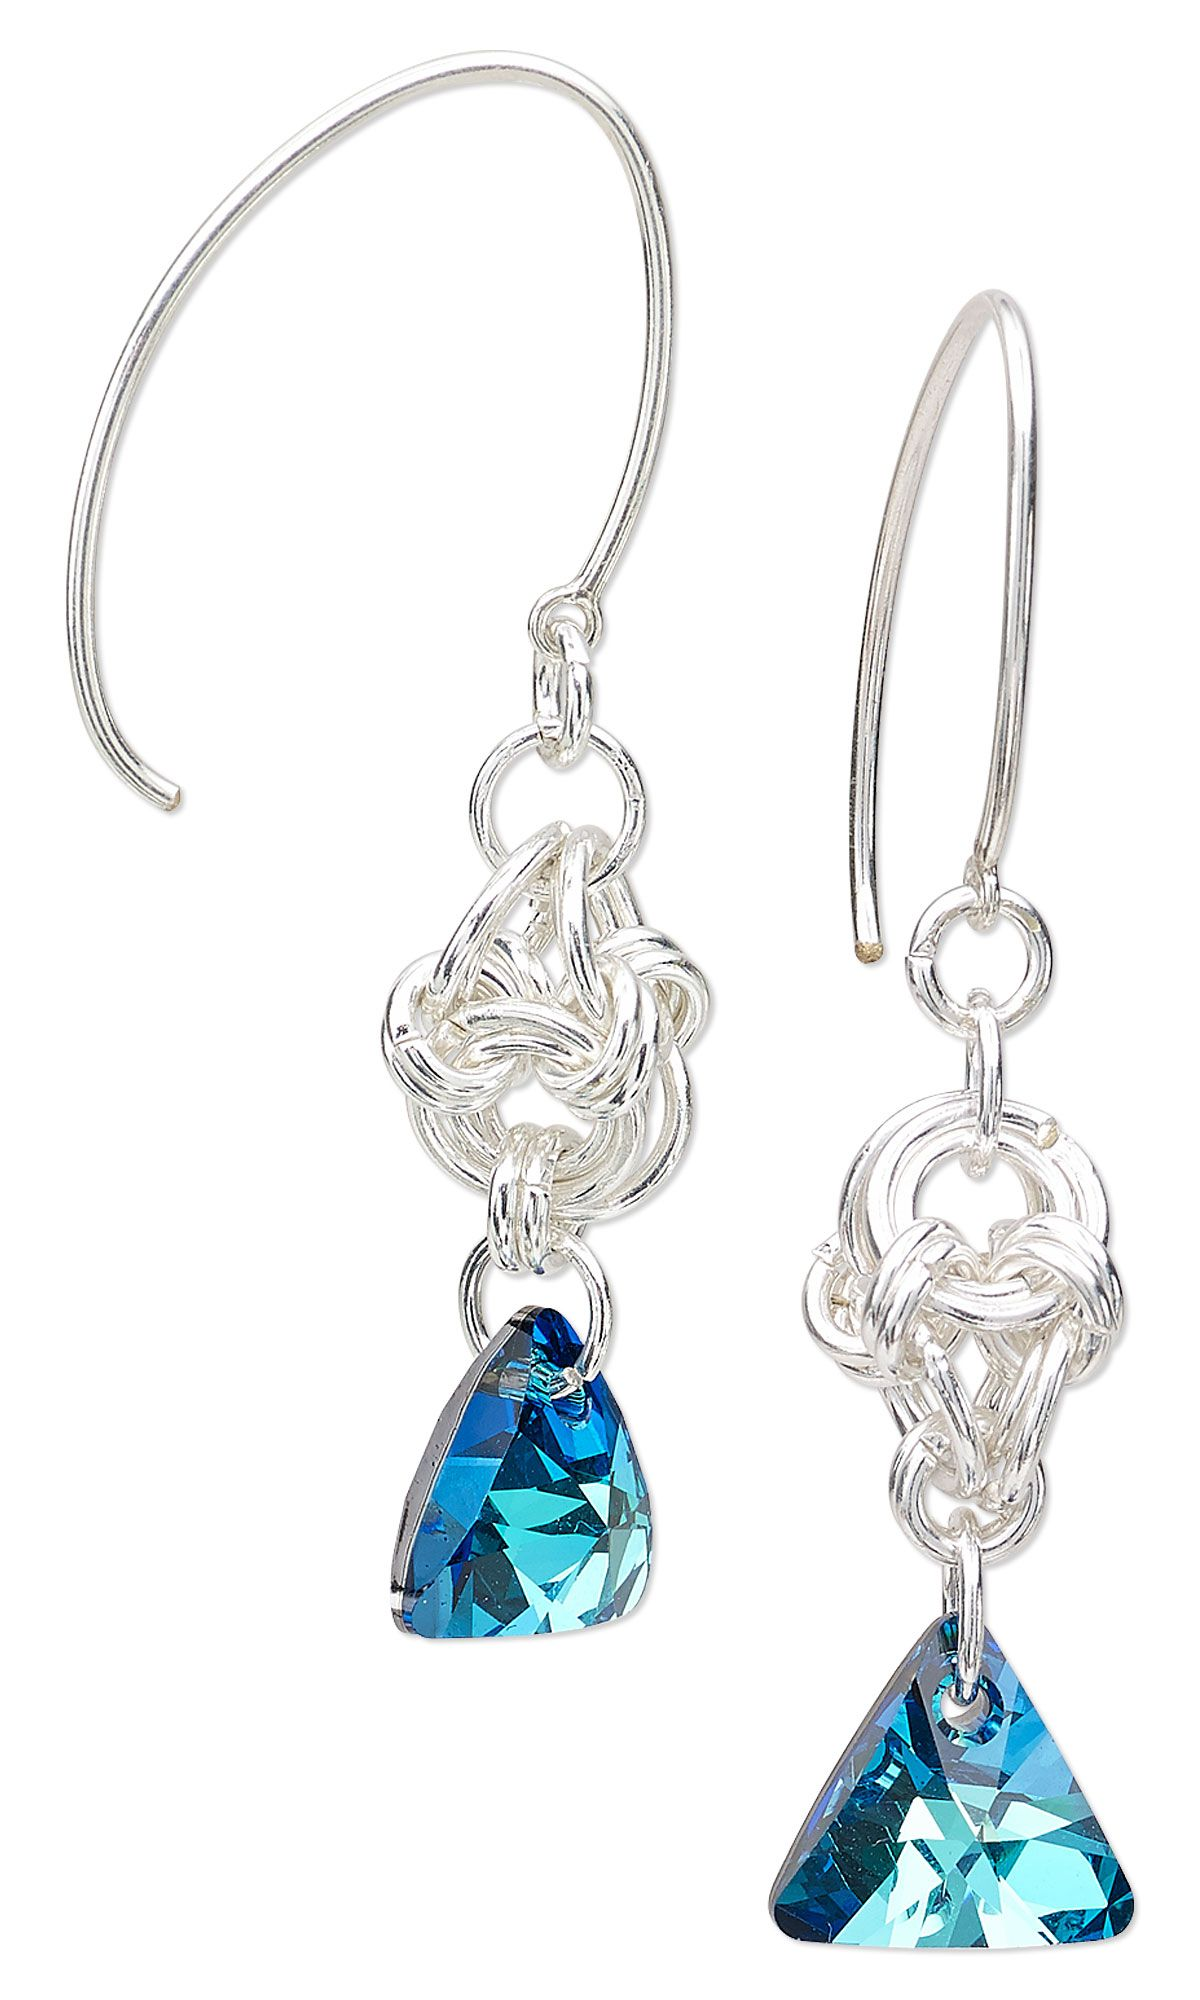 Jewelry Design - Earrings with Swarovski Crystal Triangle Pendant ...